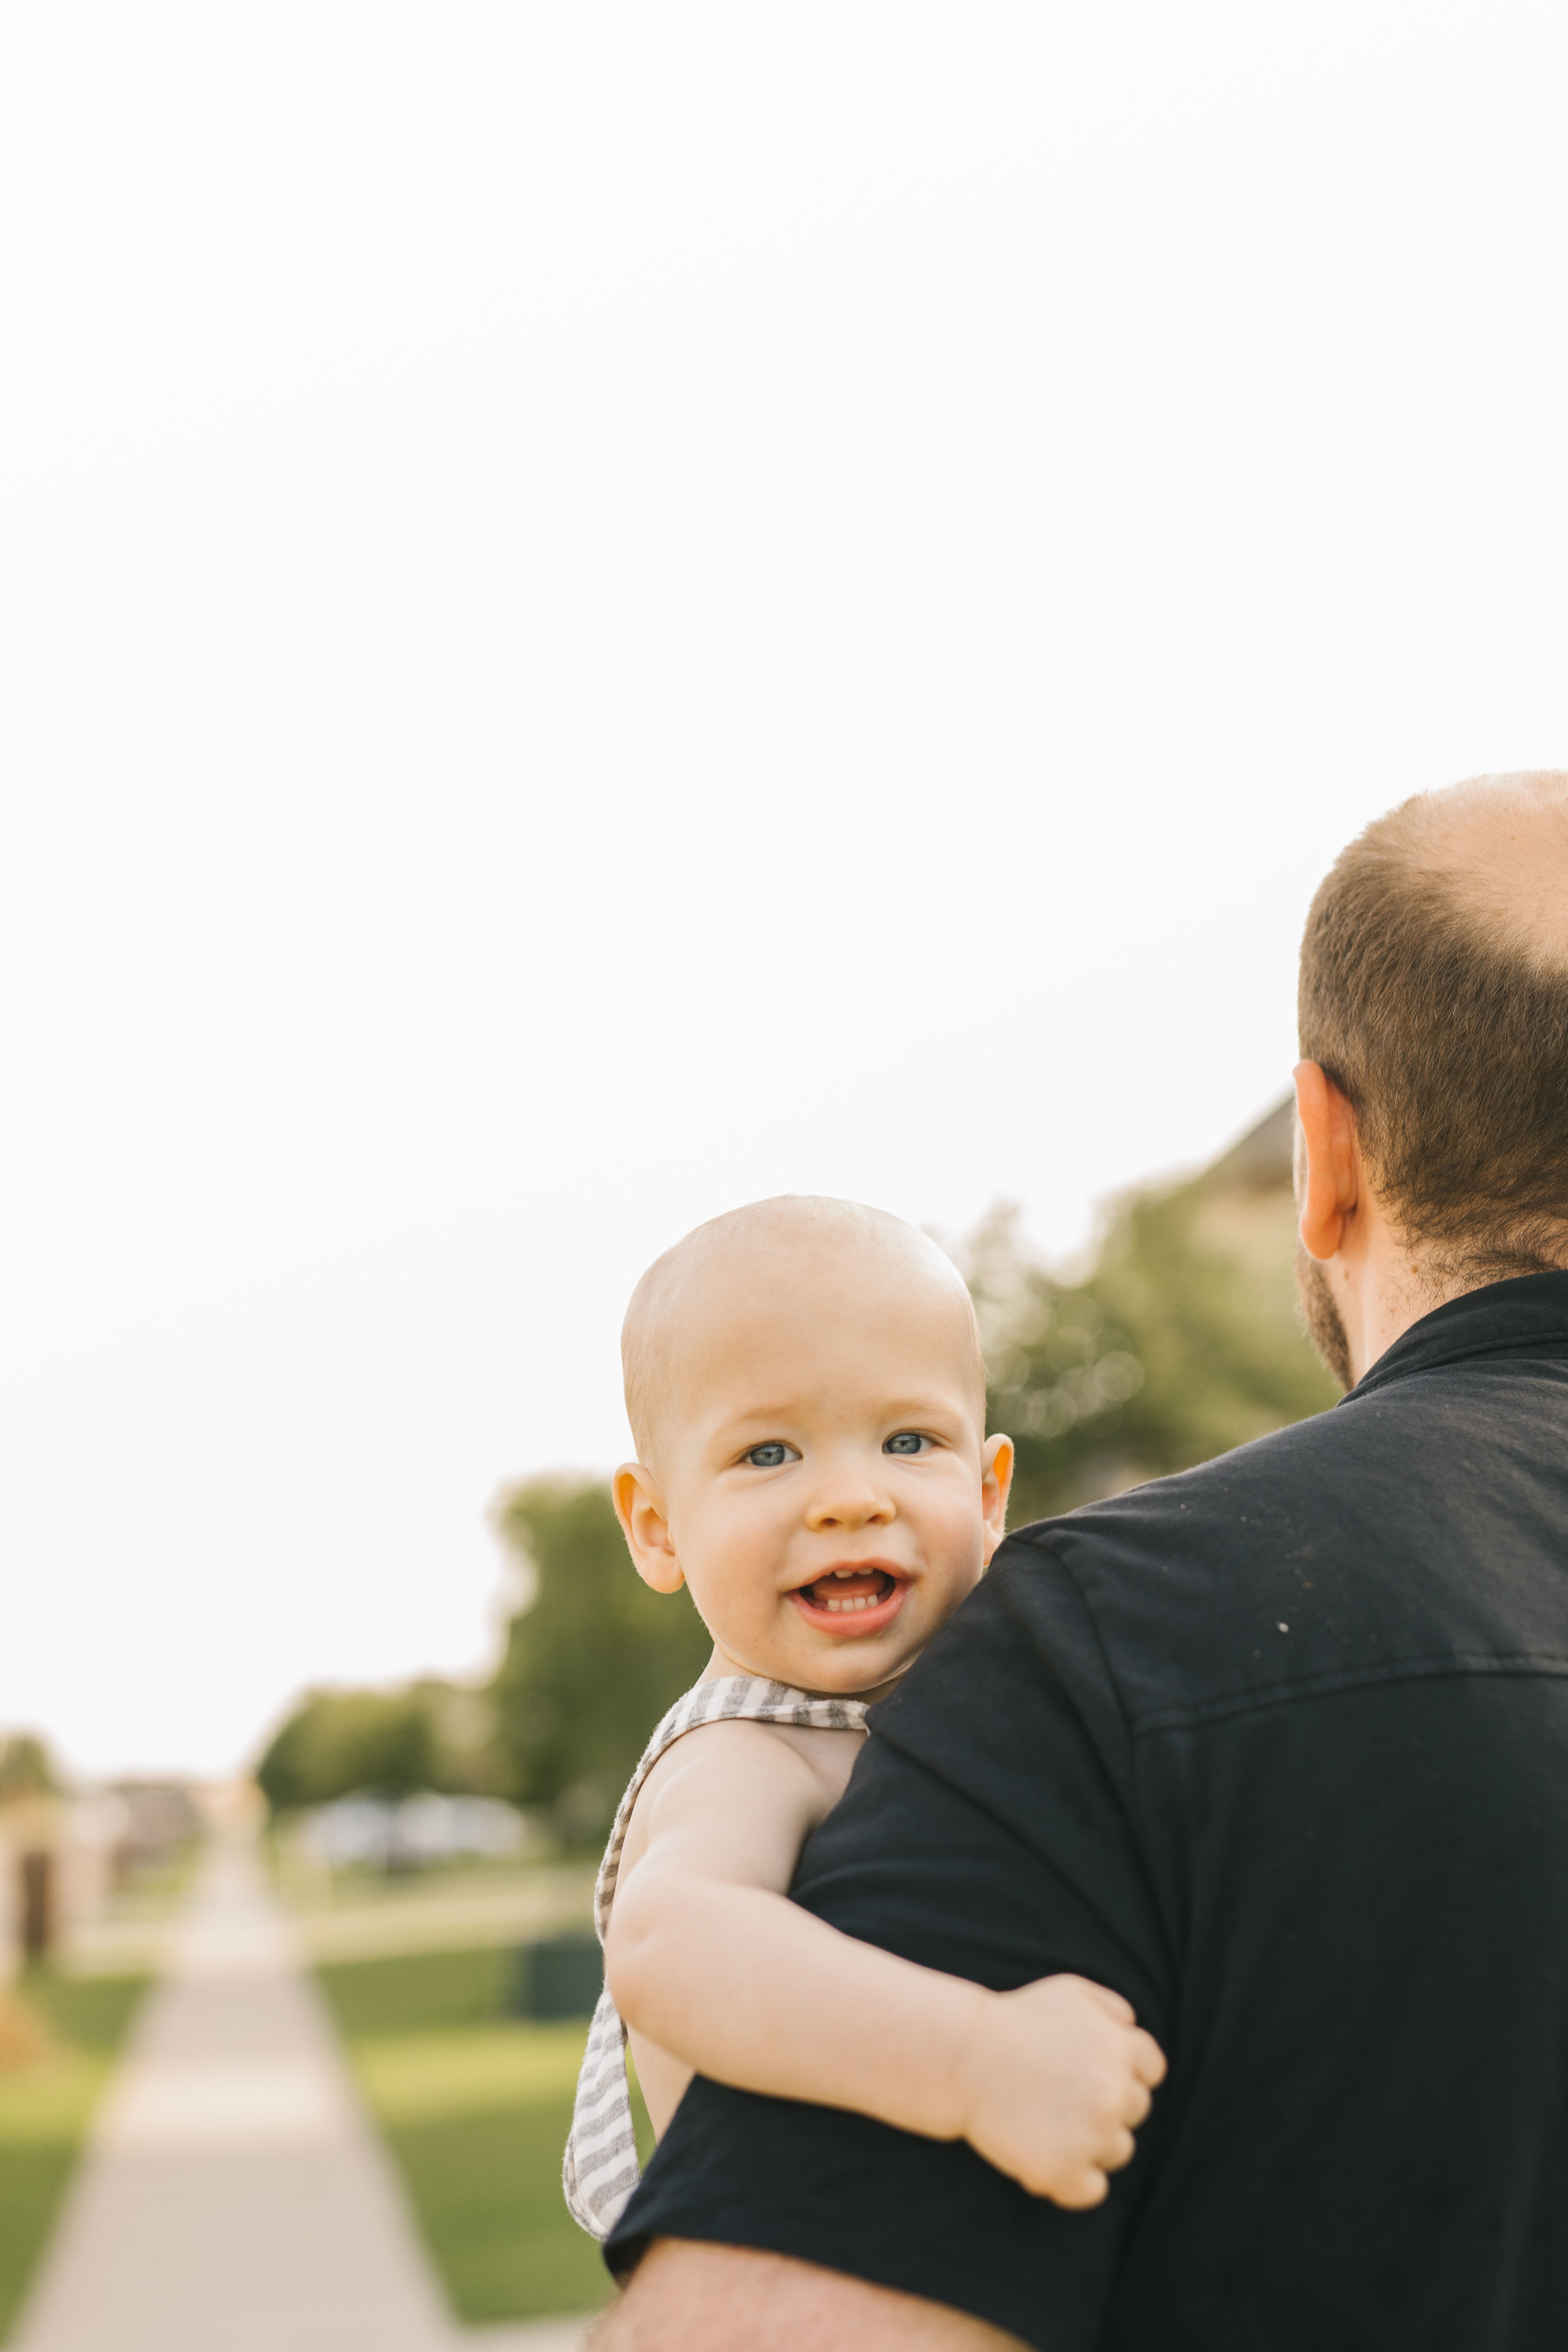 Dallas family session in-home and on a walk around the neighborhood with sweet family of four by Seattle family photographer Chelsea Macor Photography #seattlefamilyphotography #dallasfamilyphotography #inhomefamilyphotography